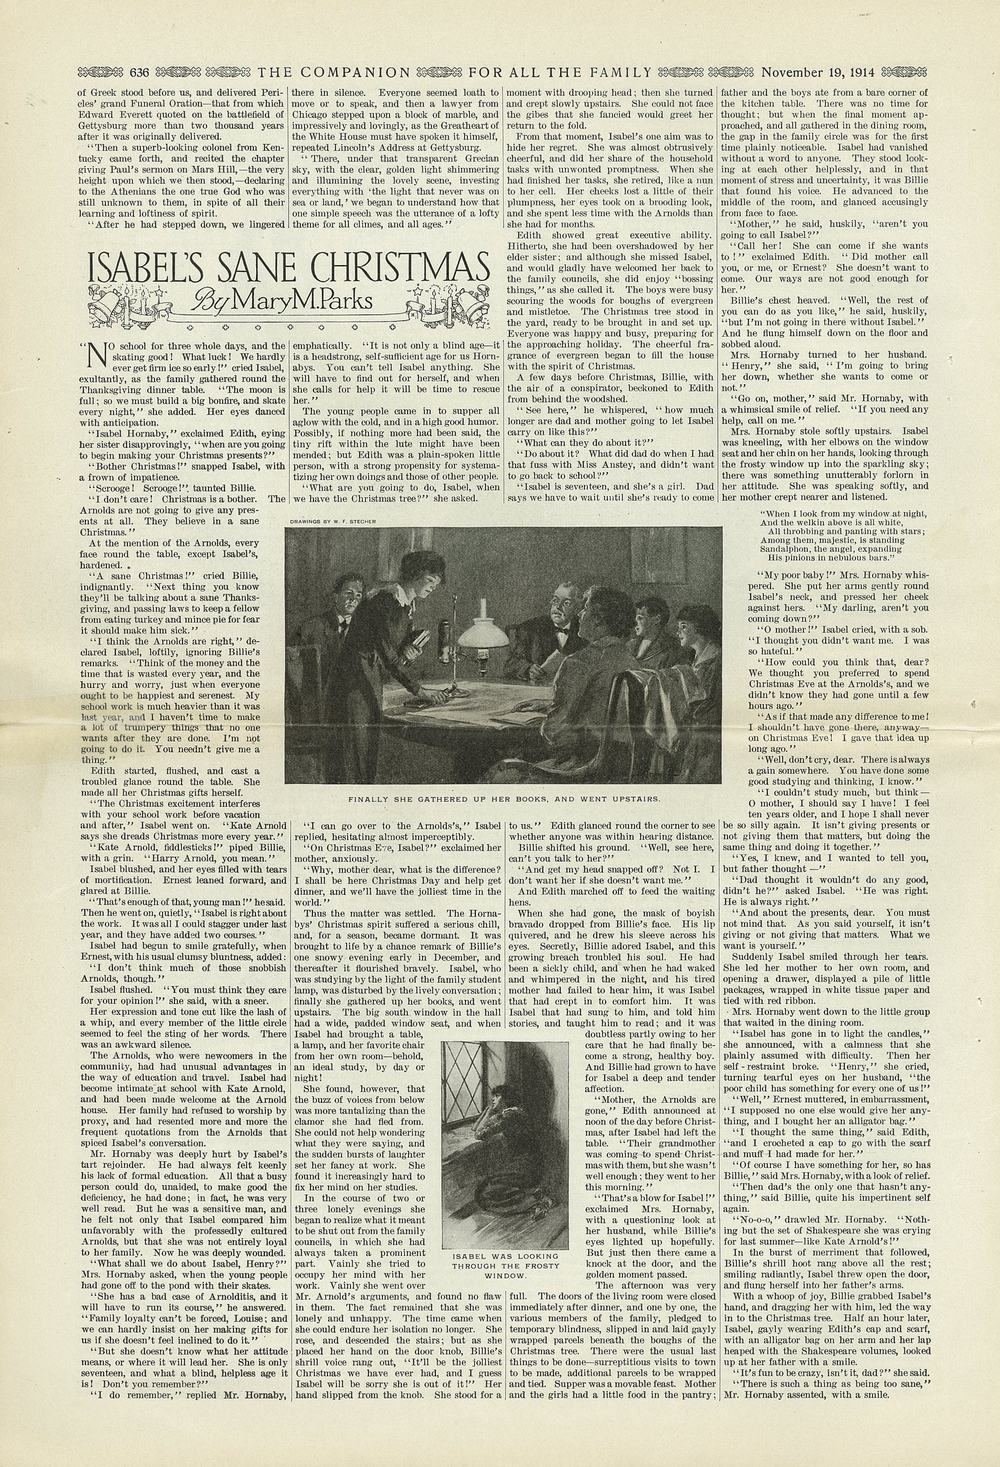 The Youth's Companion - November 19th, 1914, New England Edition, Vol. 88, No. 47